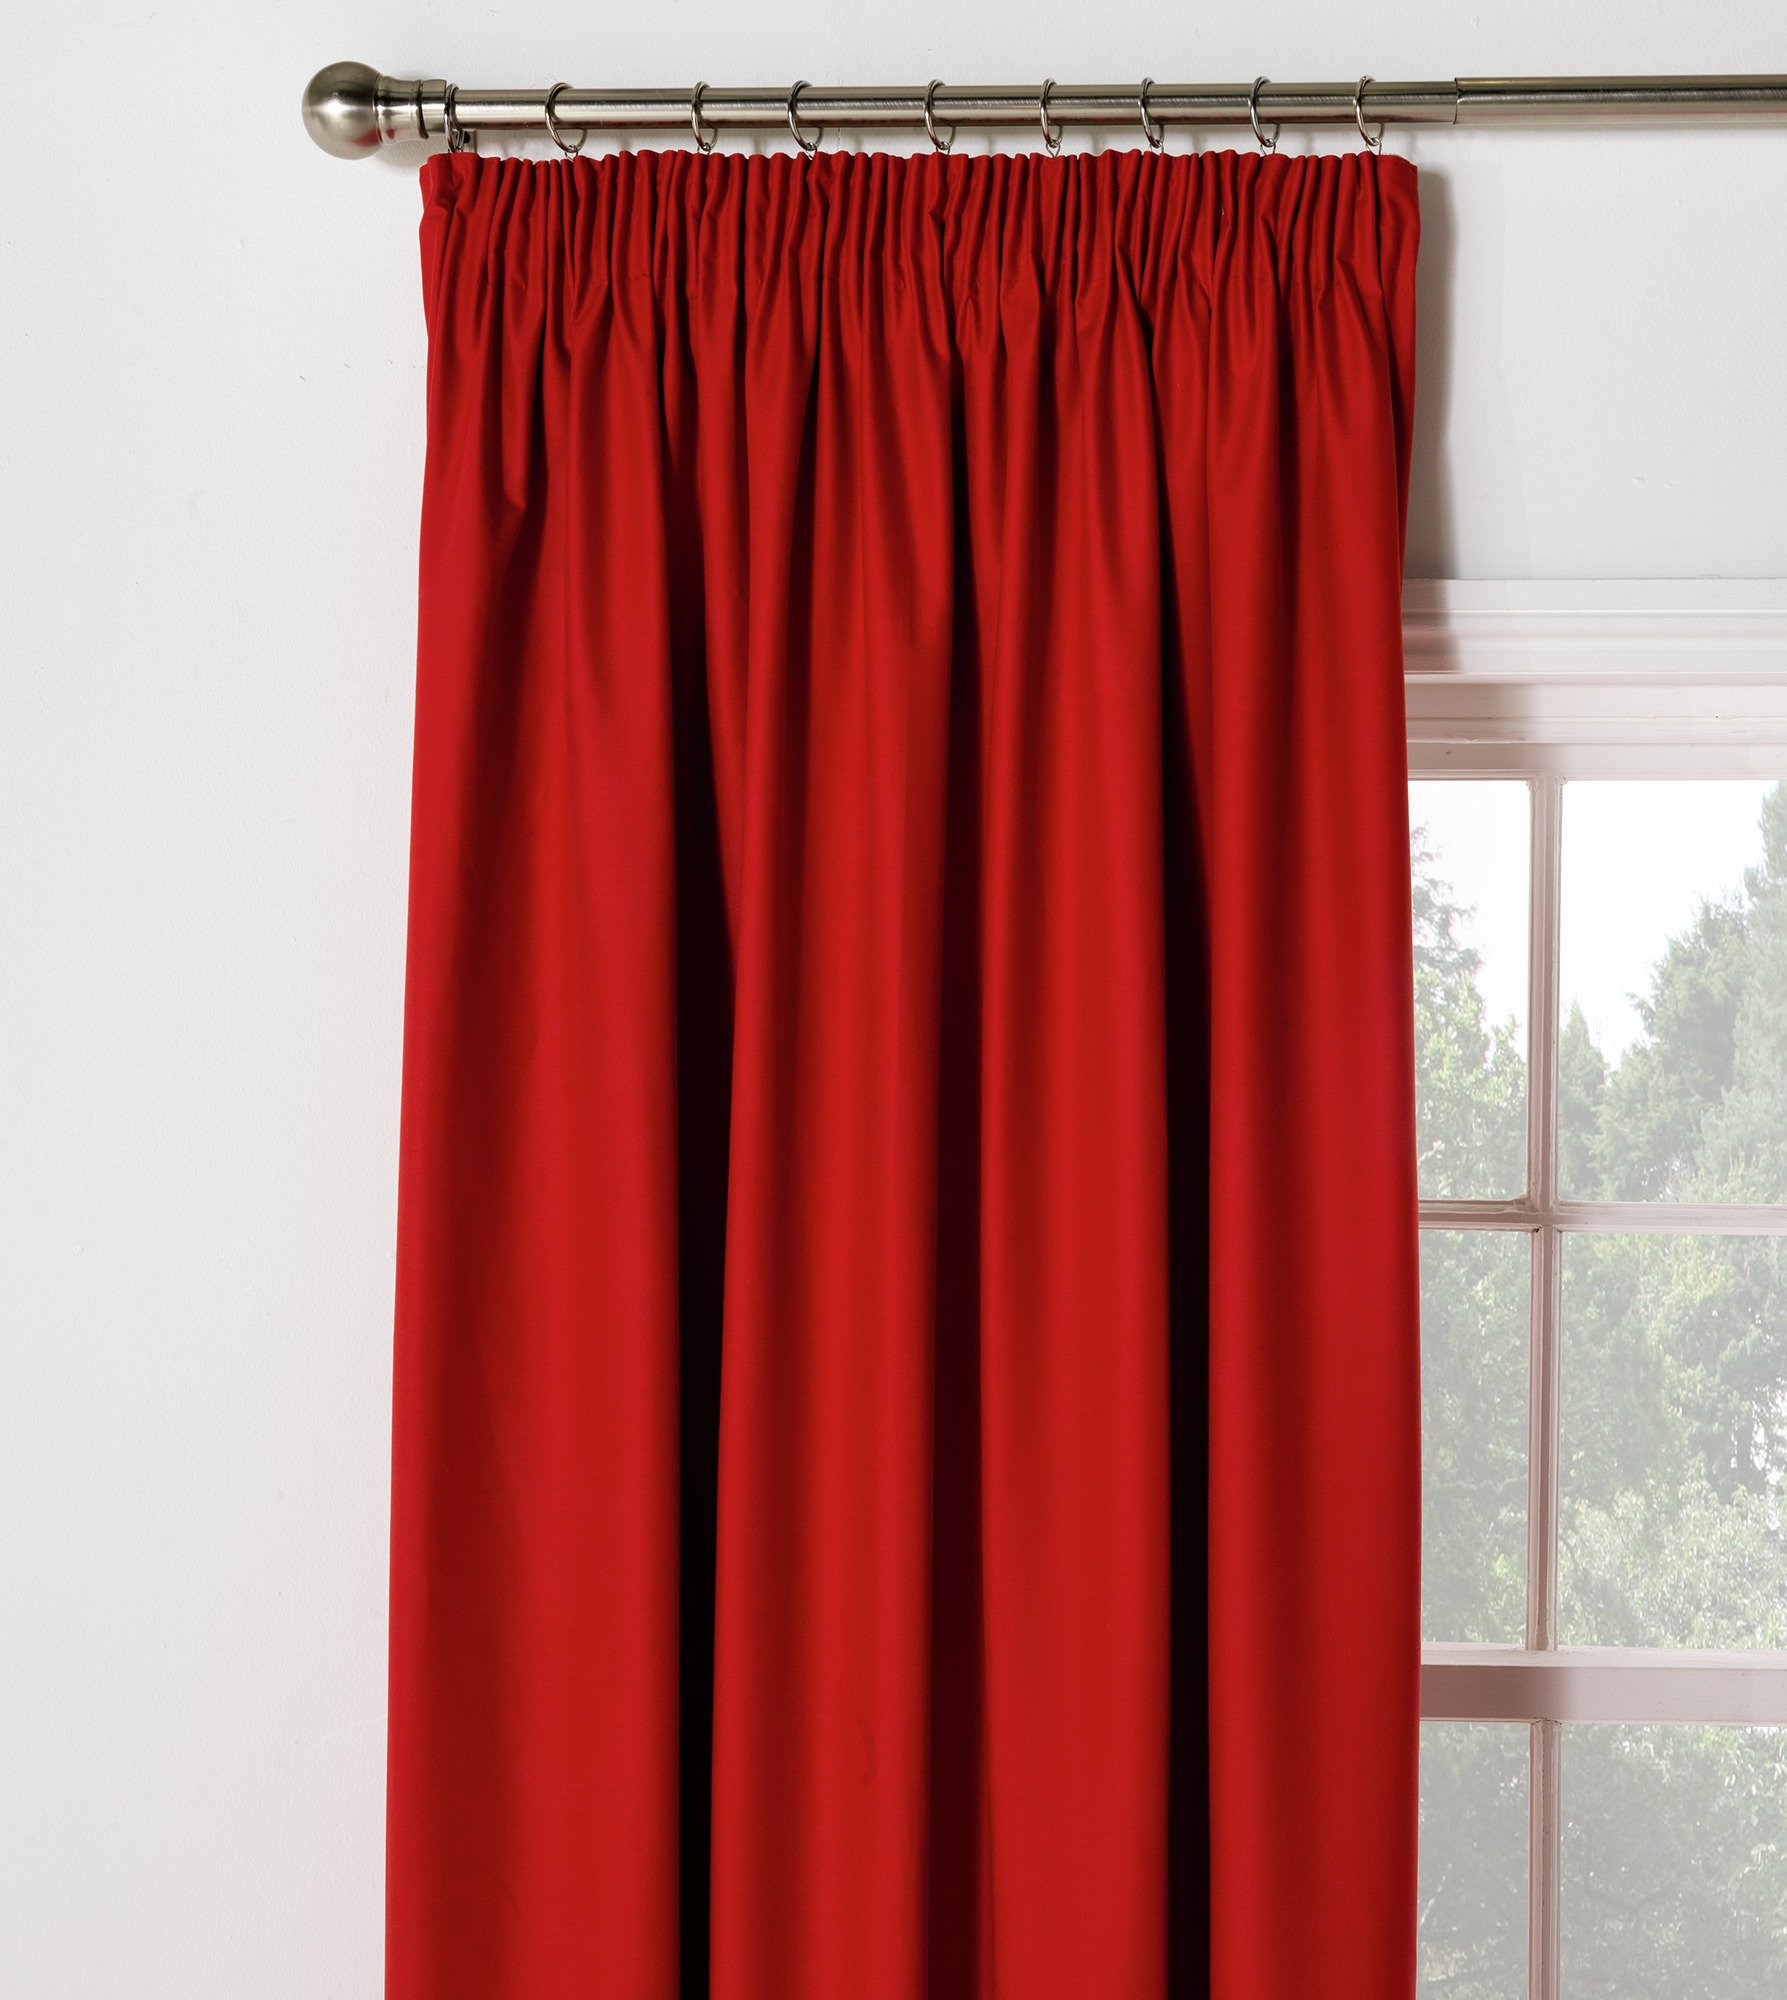 ColourMatch Blackout Pleat Thermal Curtain - 117x137cm - Poppy Red